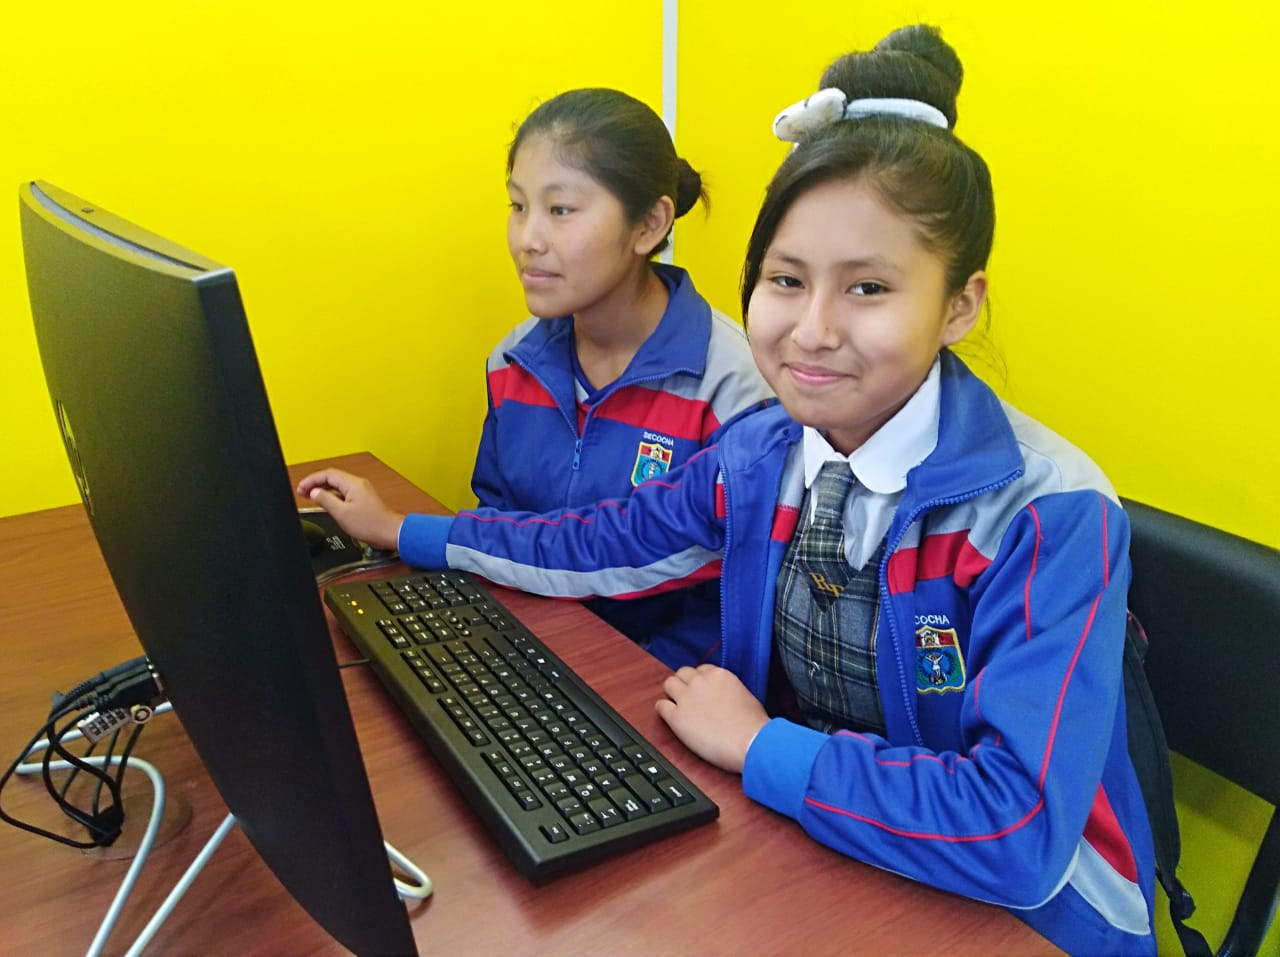 PERU | PX Impact program improves education for more than 1000 students in Arequipa